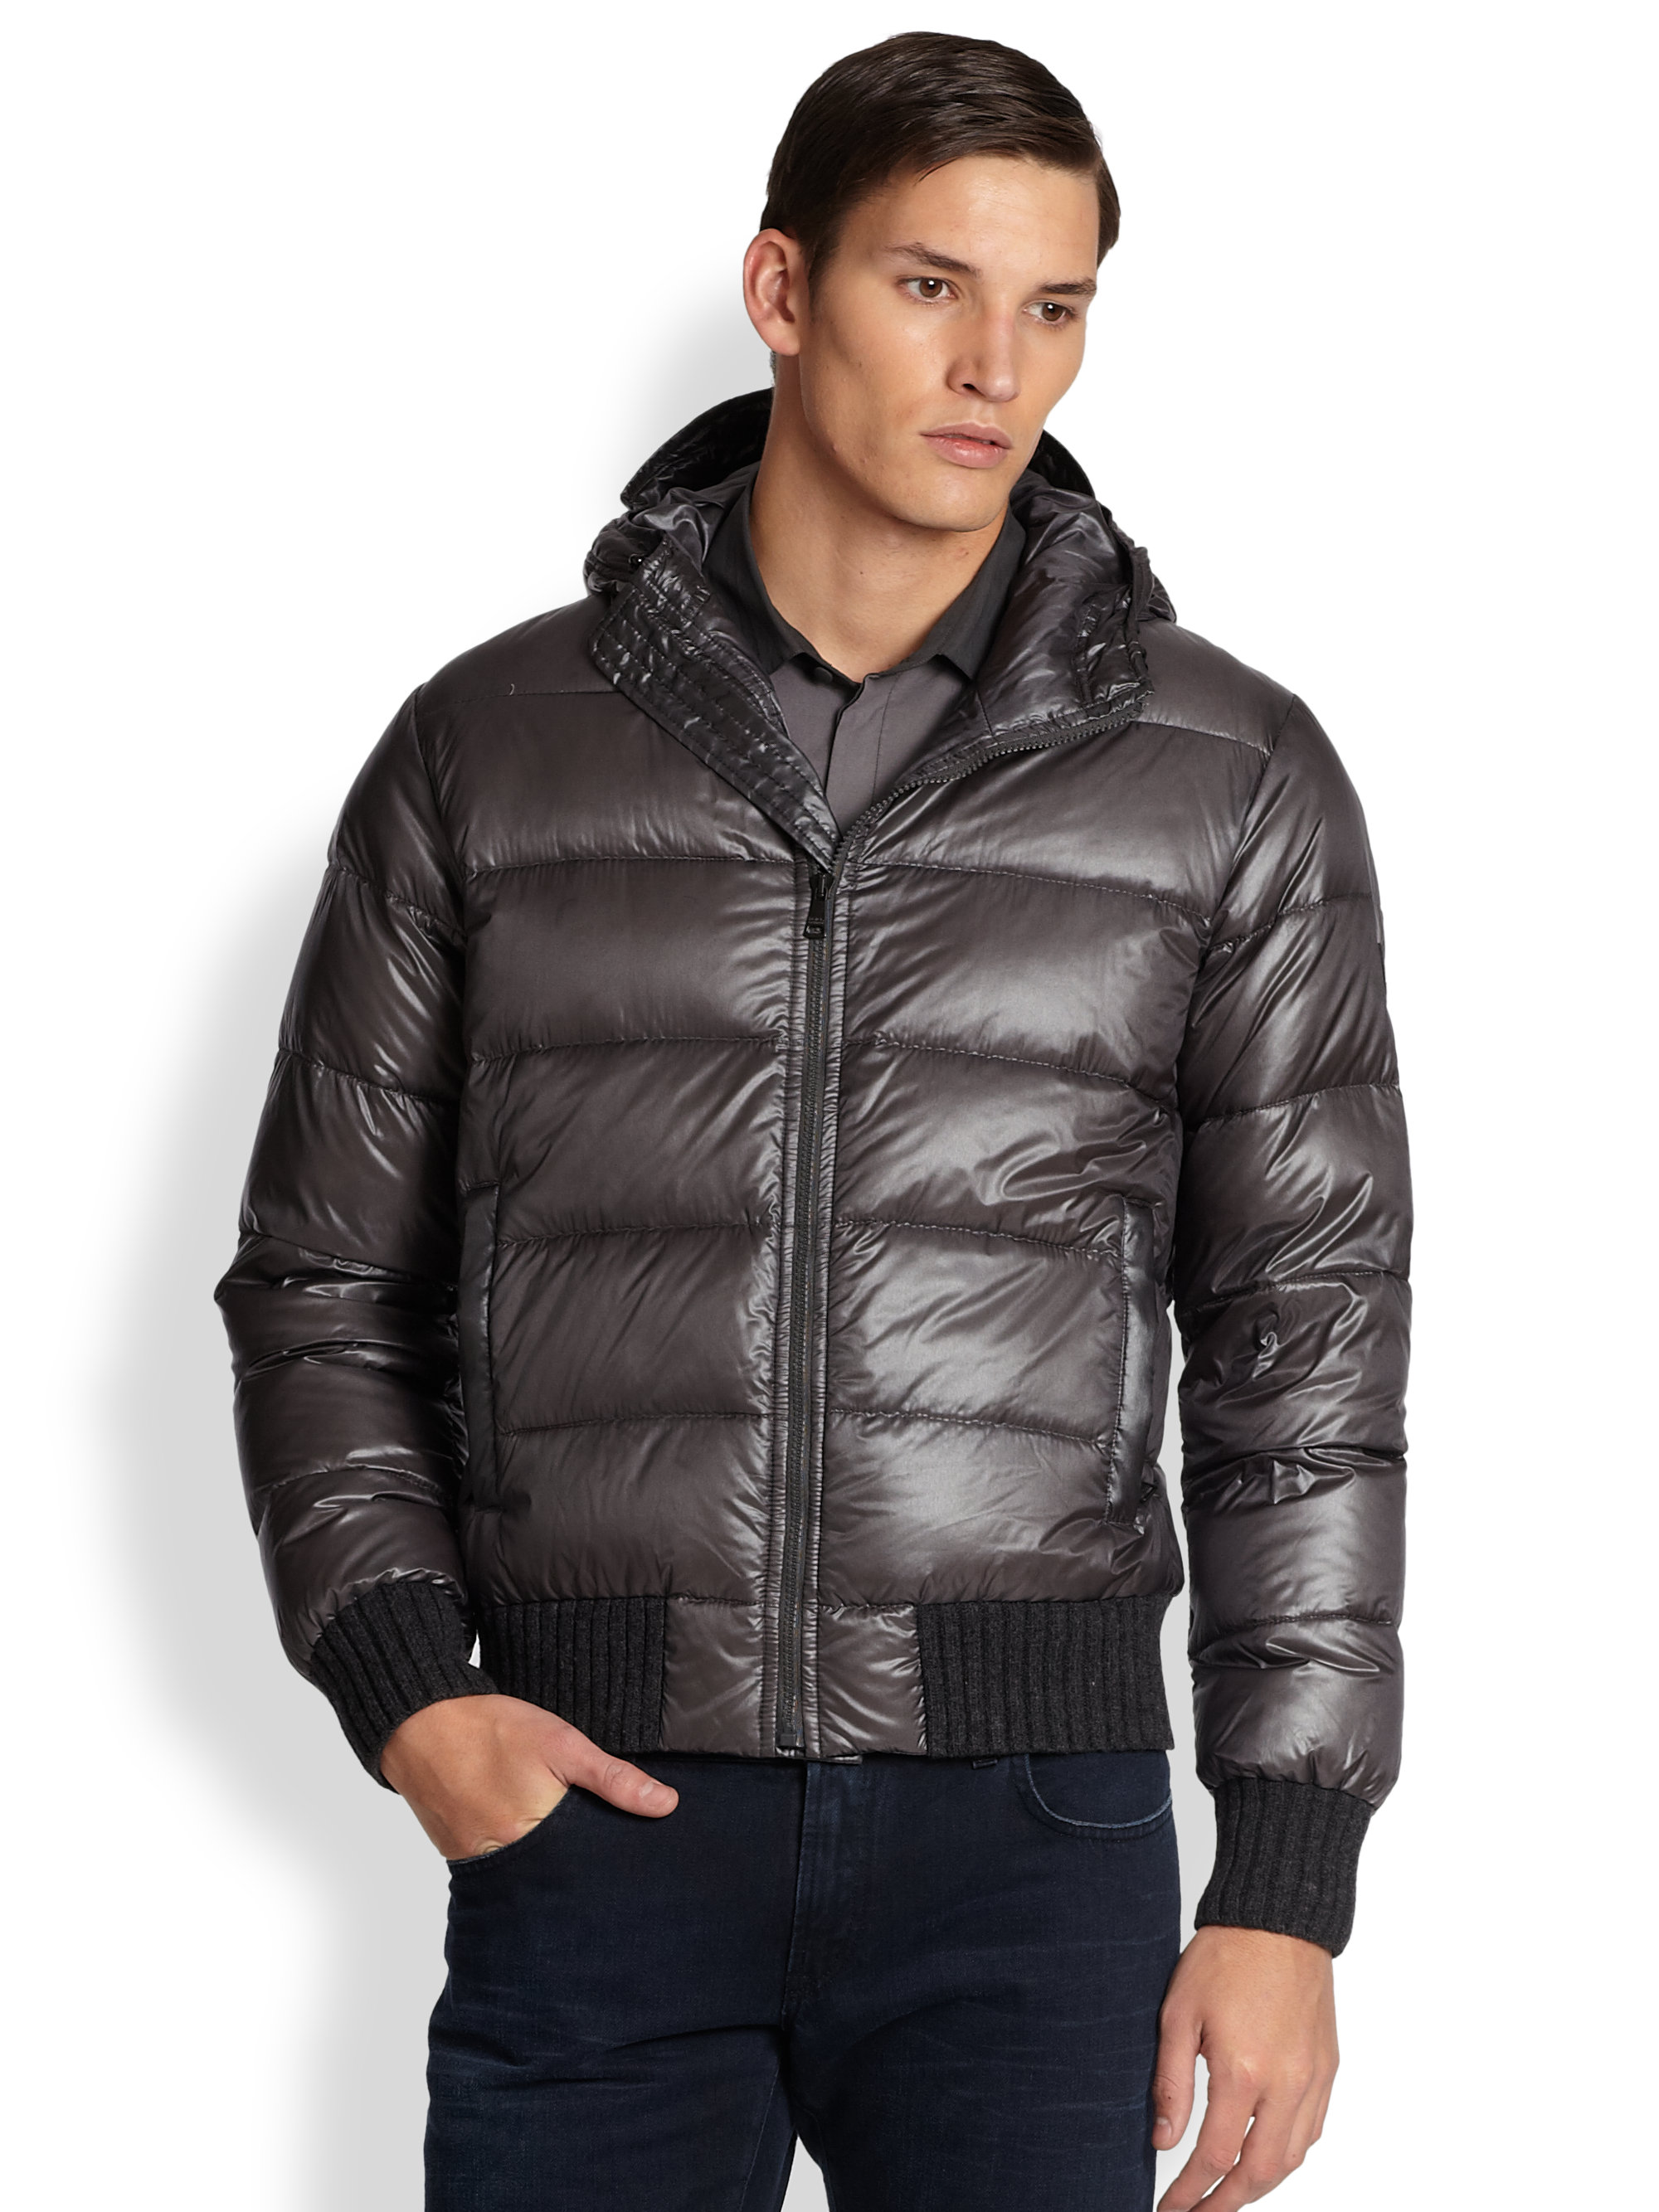 dolce gabbana hooded puffer jacket in gray for men lyst. Black Bedroom Furniture Sets. Home Design Ideas